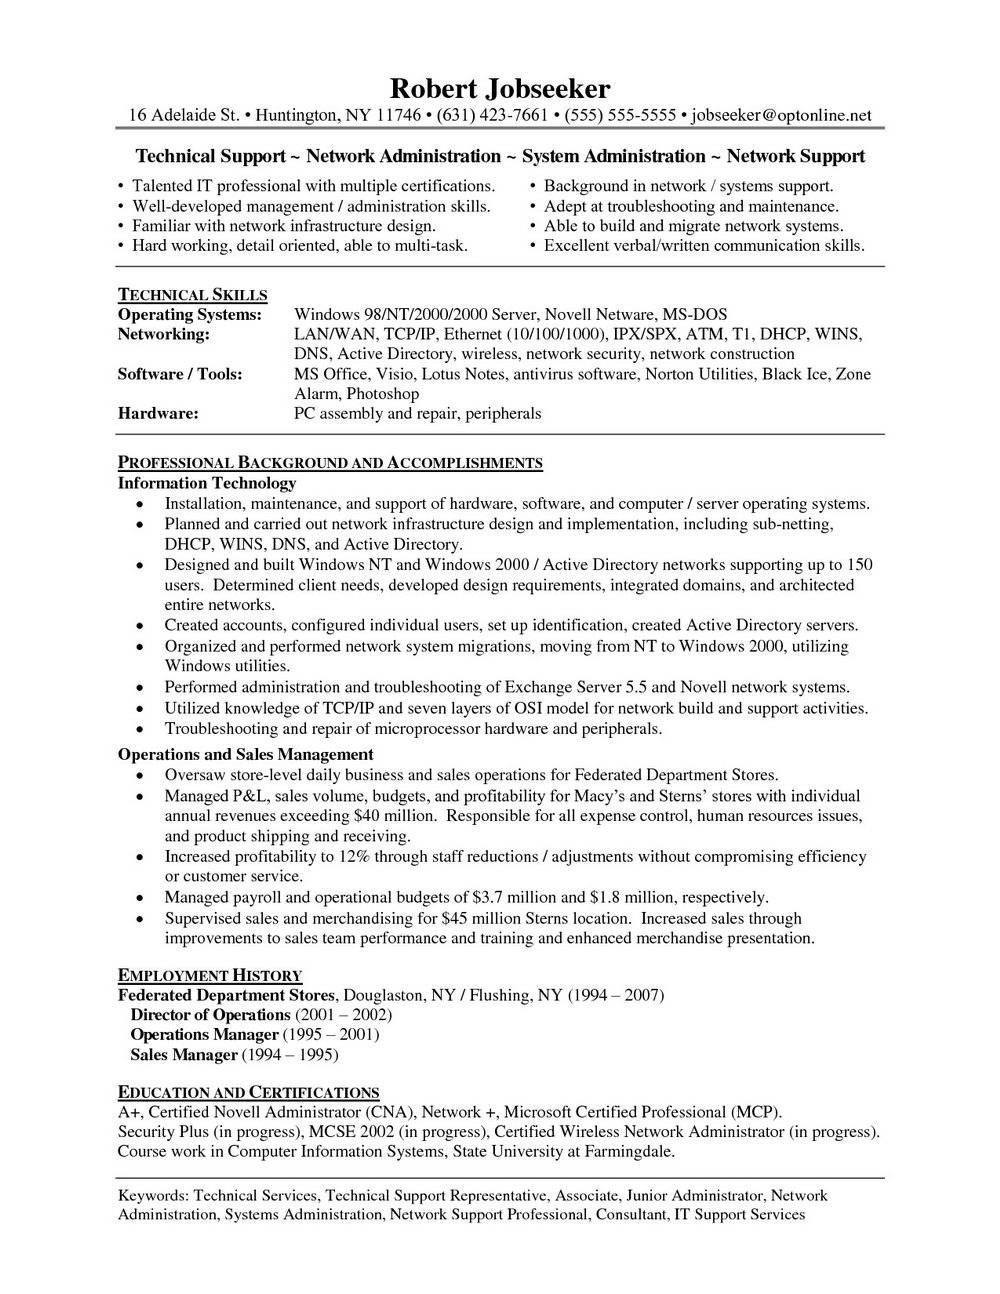 Sample Resume Of Computer Network Technician